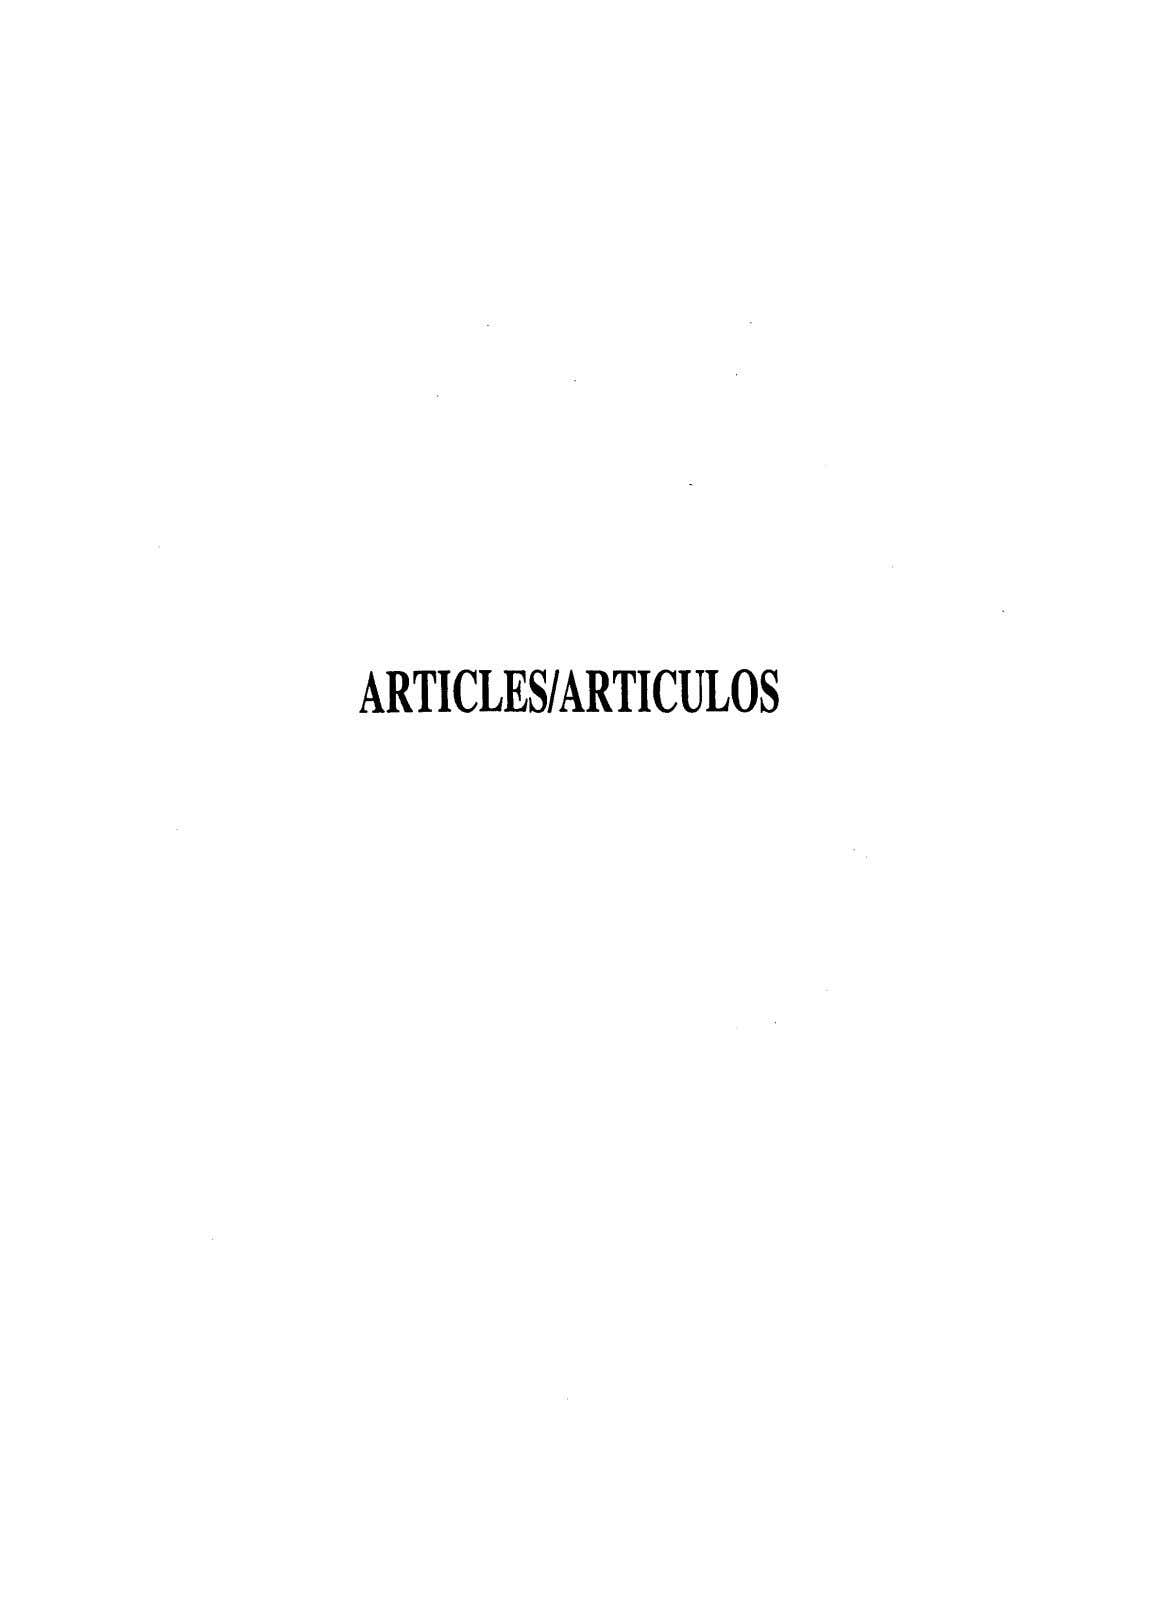 ARTICLESIARTICULOS